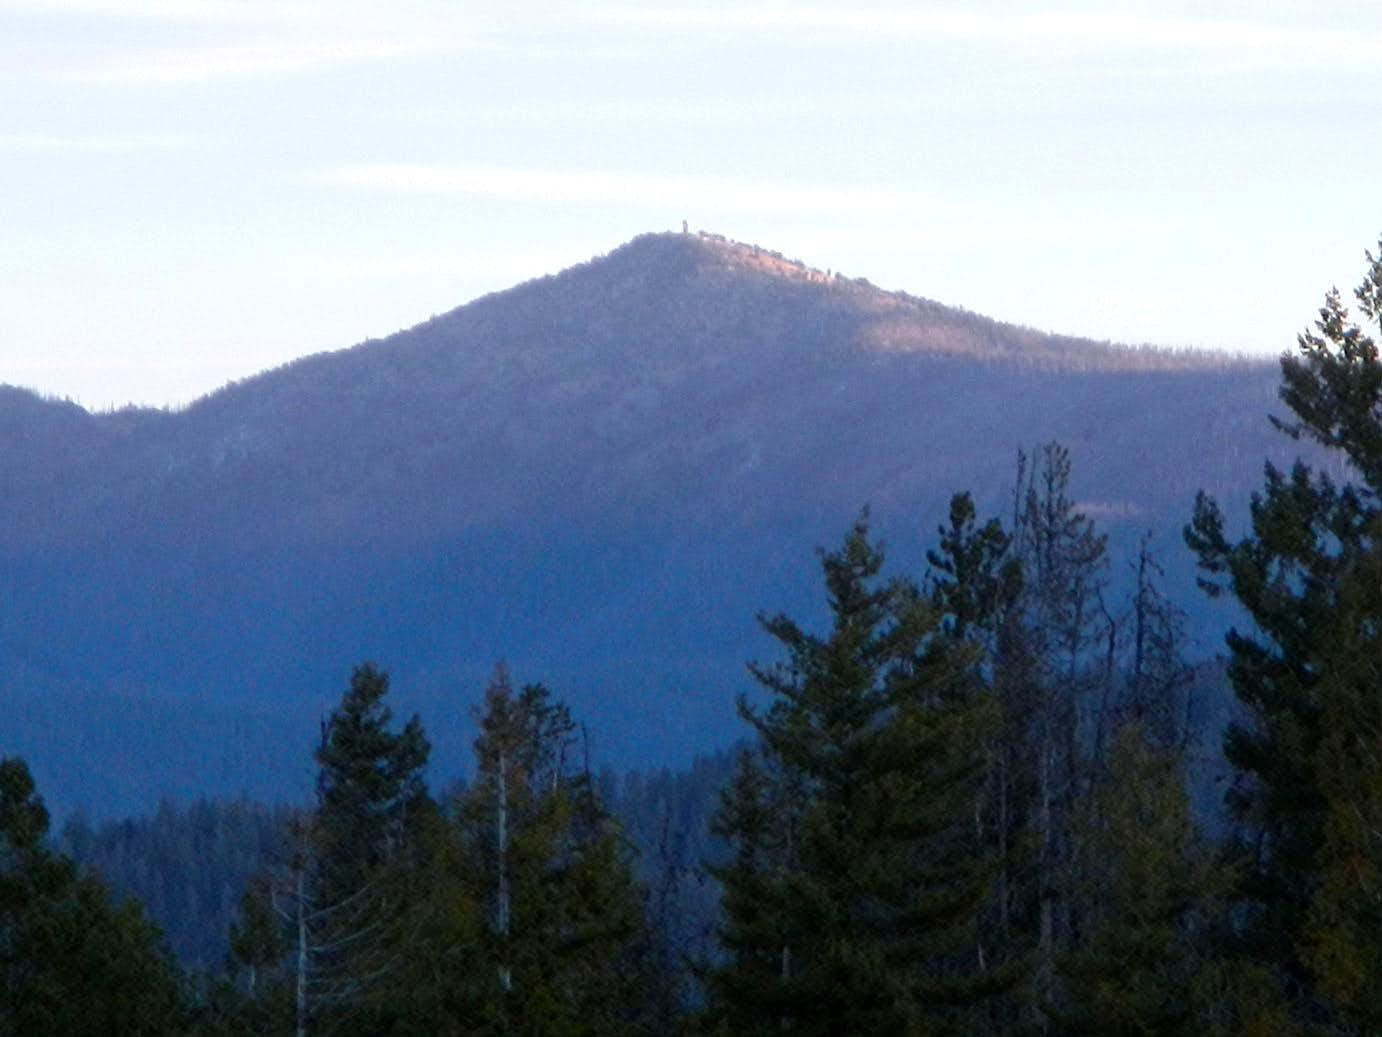 North Twentymile Peak